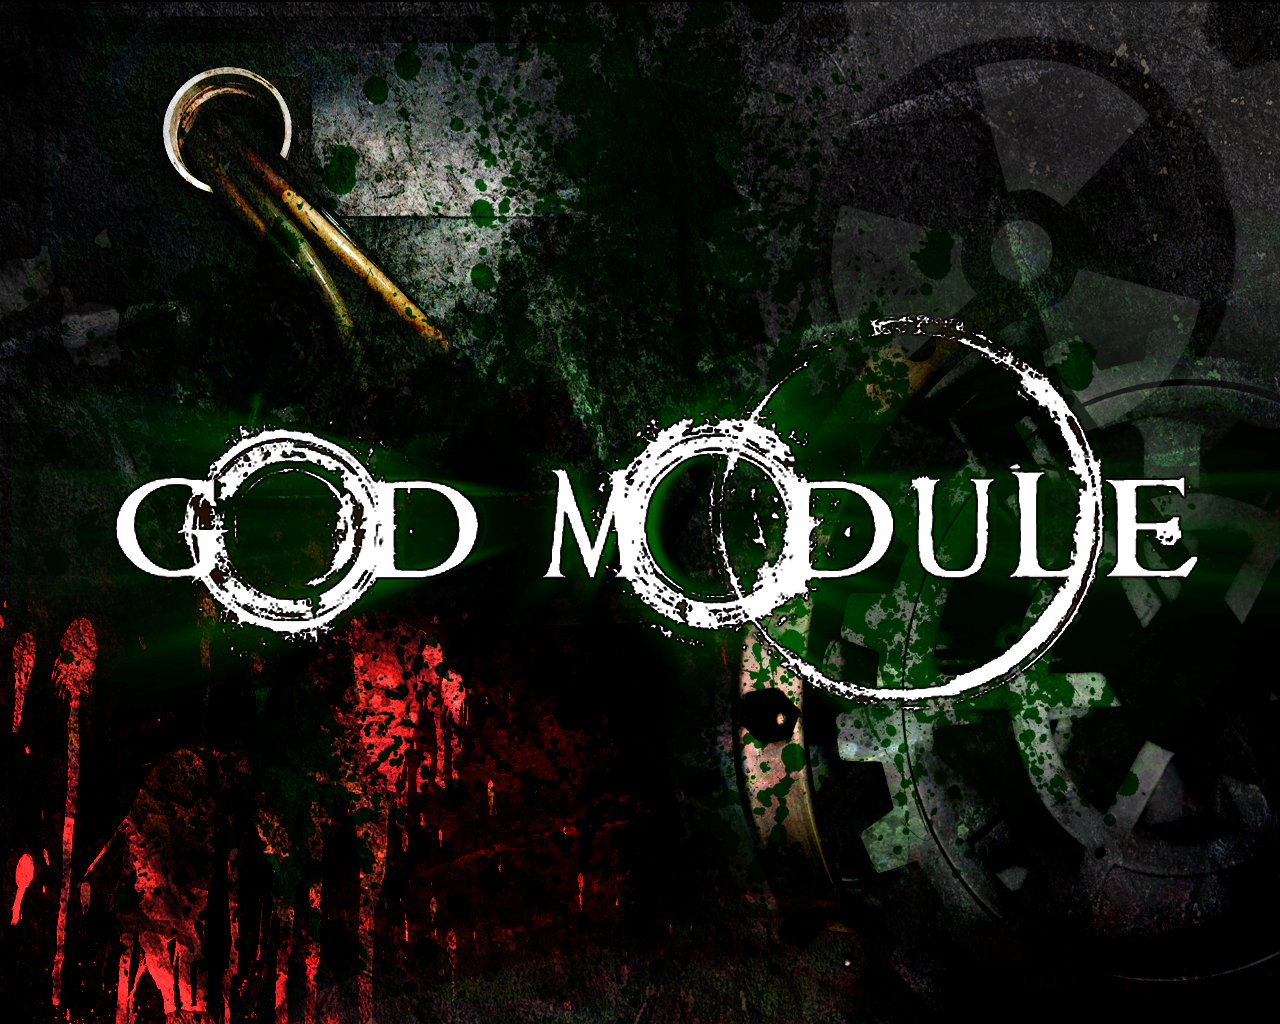 God Module - American Aggrotech and Electro-Industrial band. - Listen till your ears start to bleed. Then listen more.